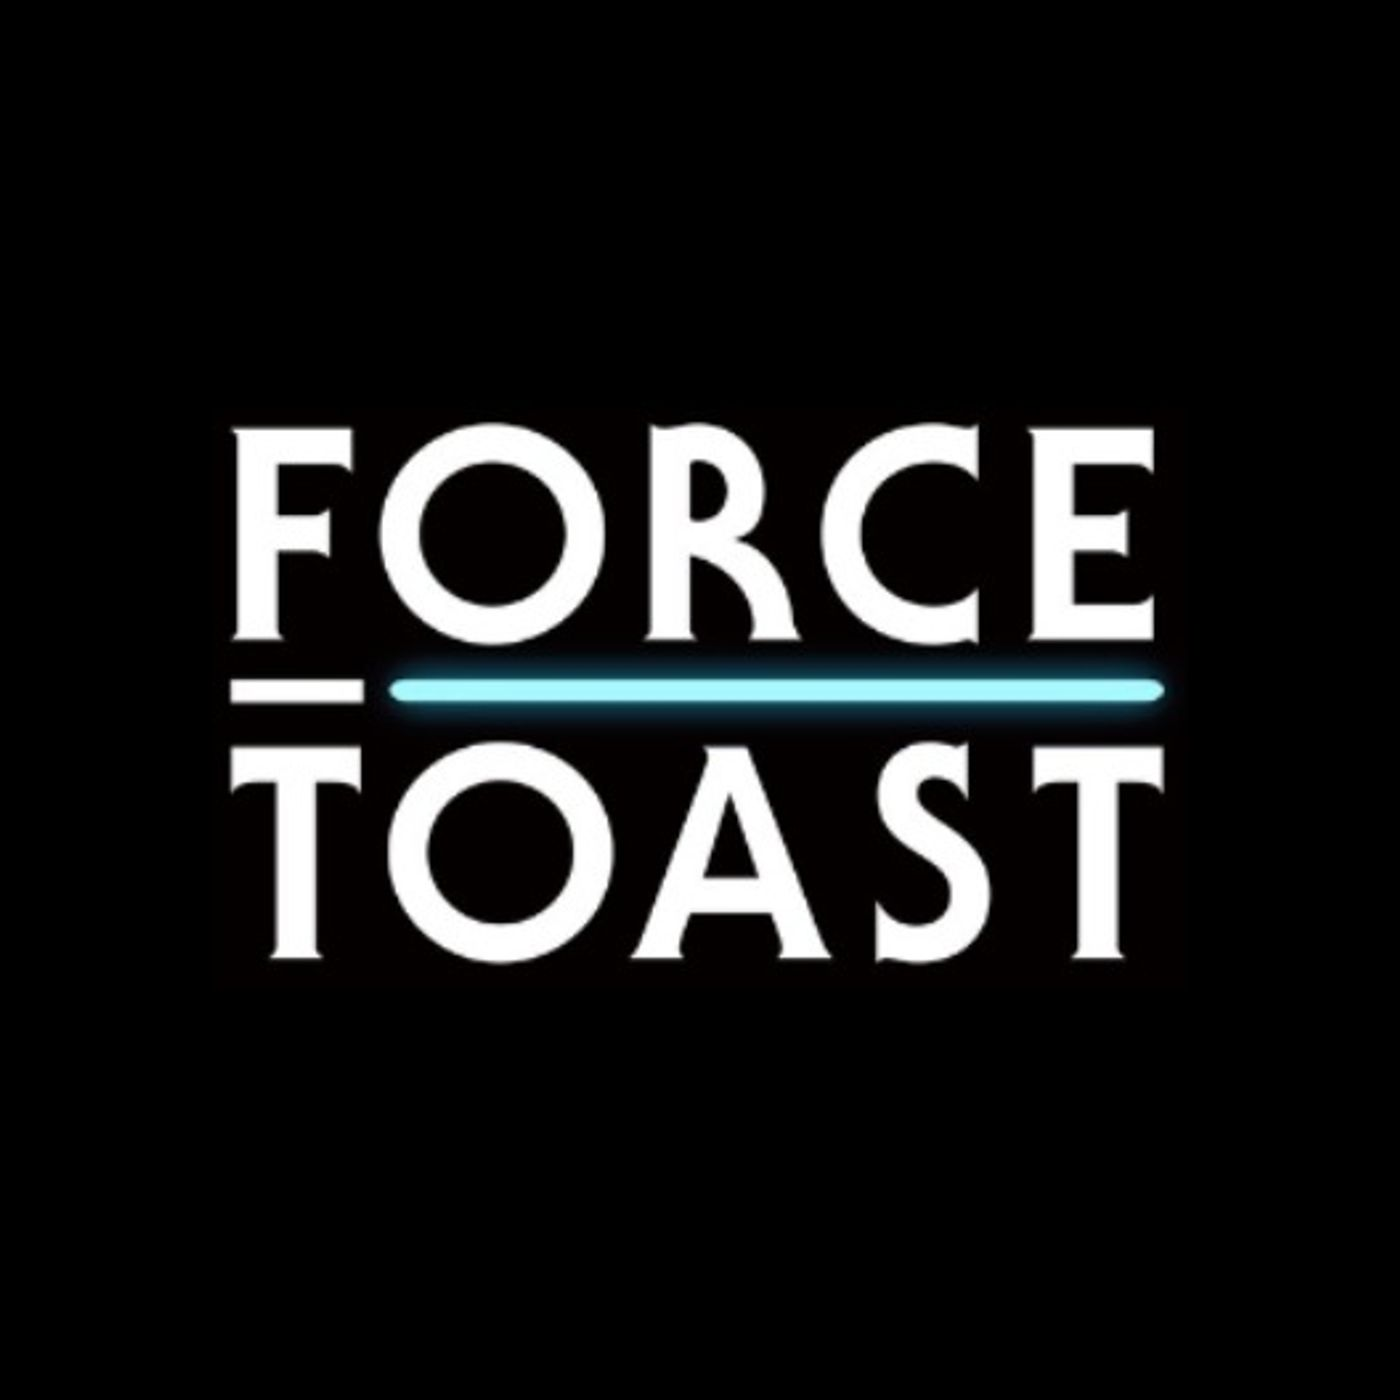 Ep 48: Forever Toasty